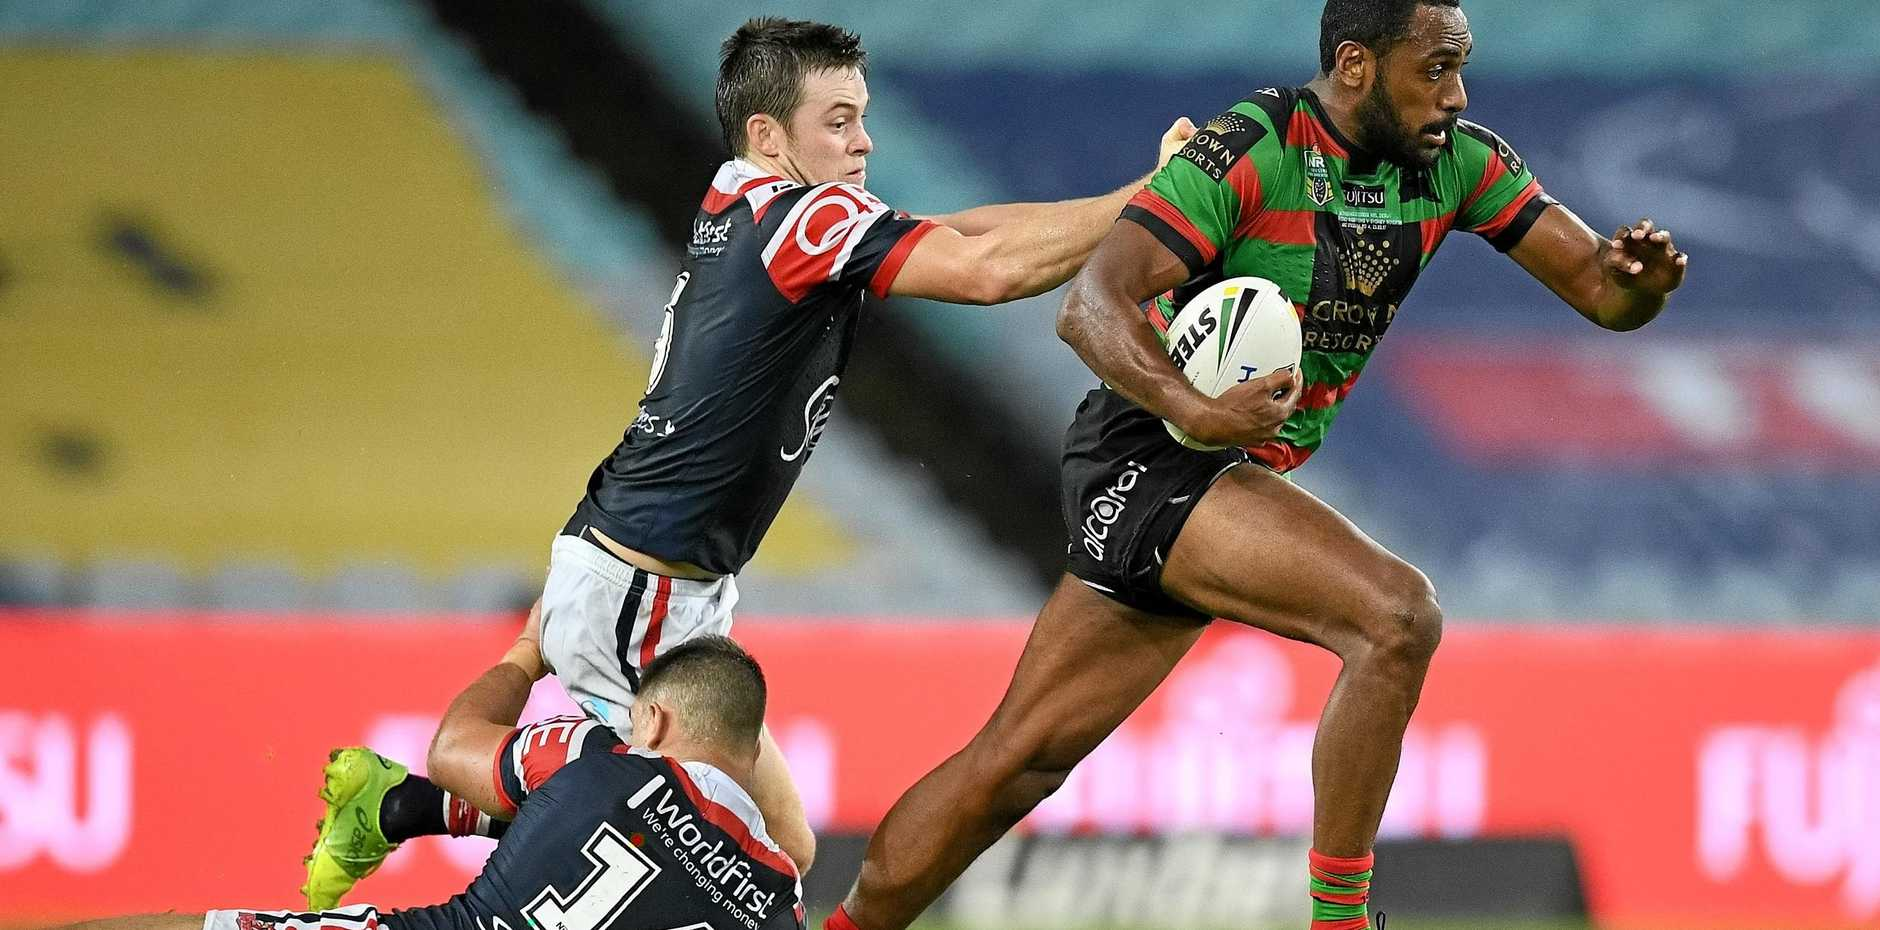 Sitiveni Moceidreke of the Rabbitohs is tackled by Luke Keary of the Roosters during the Round 4 NRL match between the South Sydney Rabbitohs and the Sydney Roosters at ANZ Stadium in Sydney, Thursday, March 23, 2017. (AAP Image/Dan Himbrechts) NO ARCHIVING, EDITORIAL USE ONLY